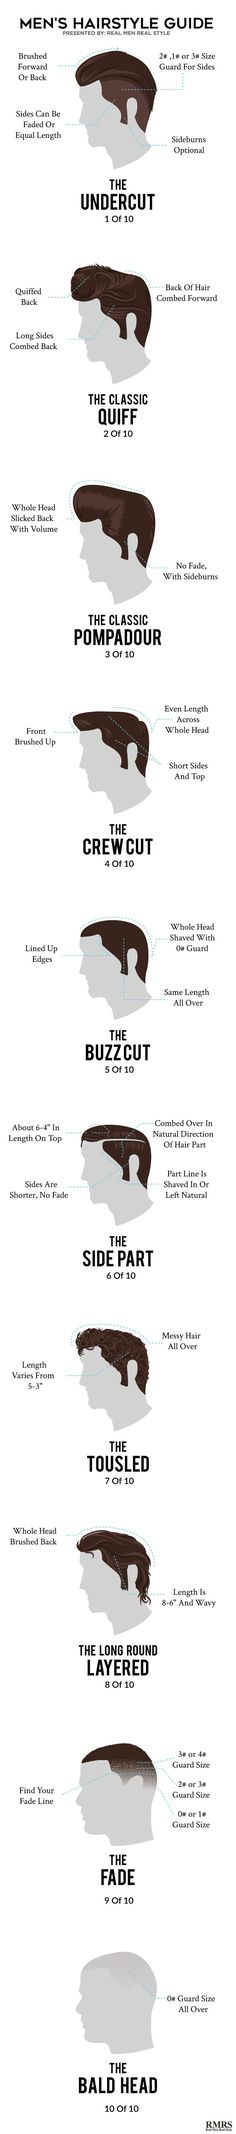 Men's Hairstyle Guide Infographic